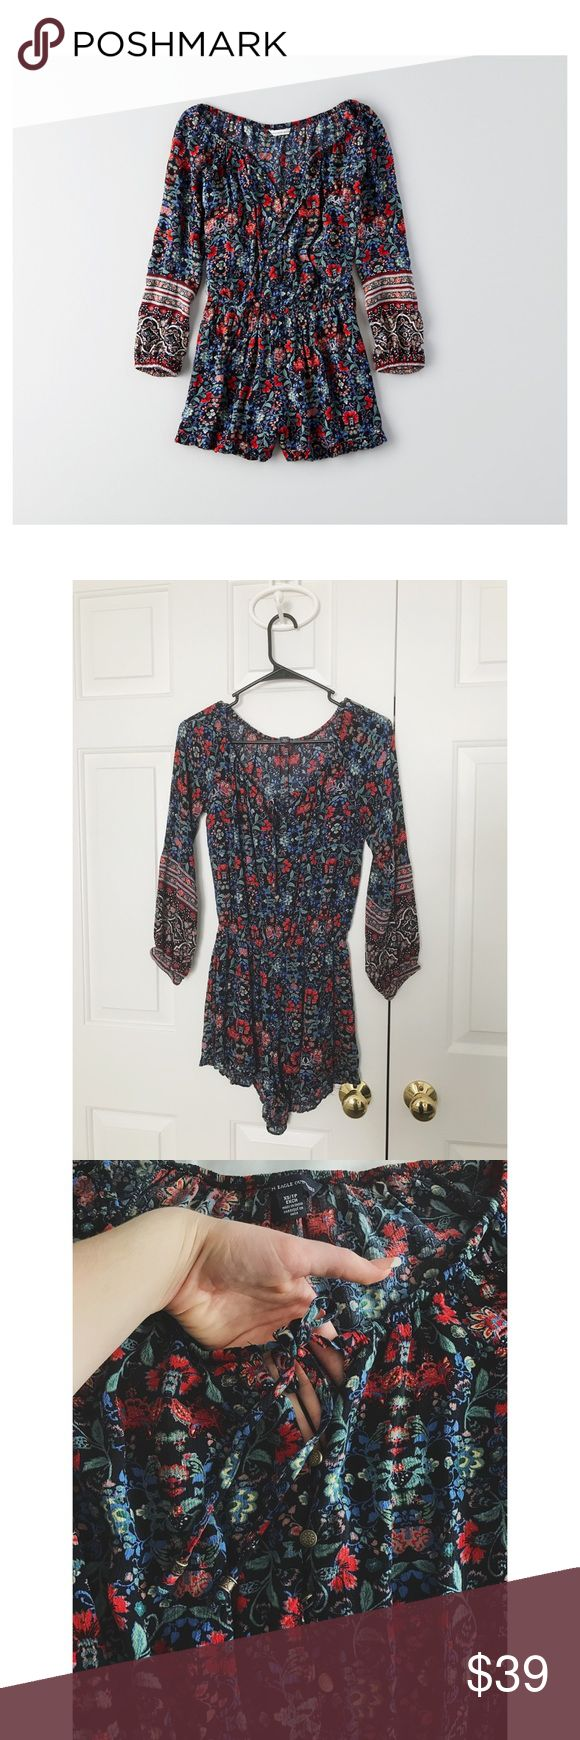 American Eagle Romper worn once, in excellent condition. could also fit a size s. has a tie in the front & small buttons running down the front. no longer sold online or in stores!  🚫NO TRADES / HOLDS 🚫NO MODELING 🚫NO PP / MERC / OTHER PAYMENT OPTIONS ✅Questions welcomed (other than those listed above) ✅1-2 business day(s) shipping ✅offers welcome / price negotiable ✅3 items or more - 15% off American Eagle Outfitters Dresses Long Sleeve